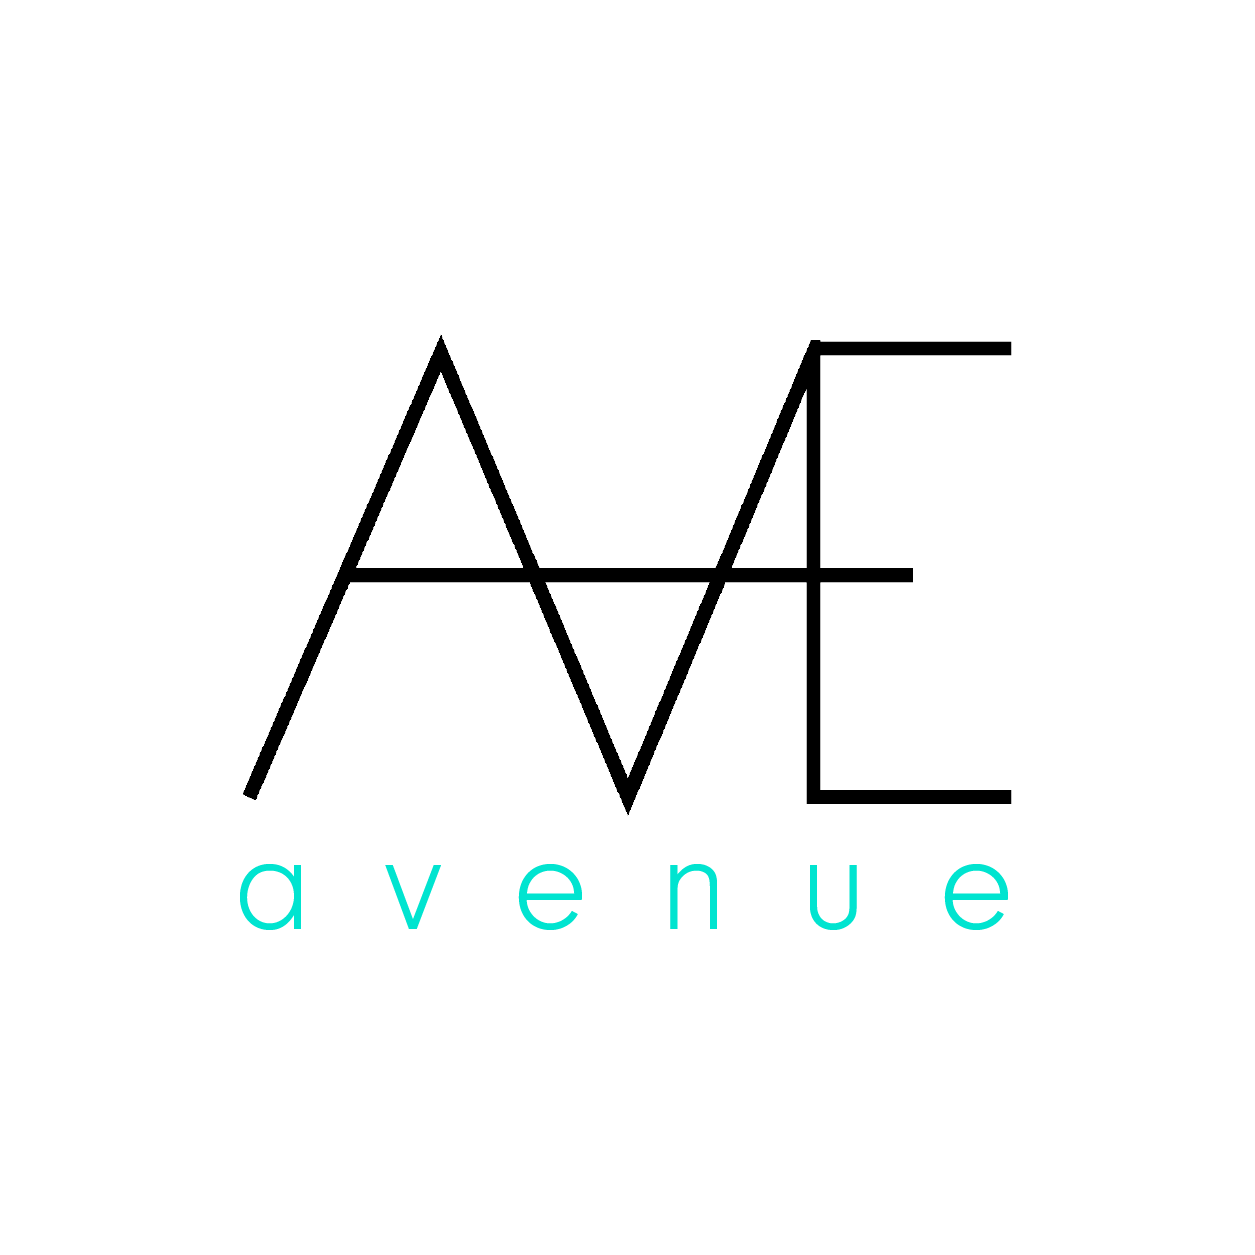 Avenue | Digital Marketing for Growth-minded Companies